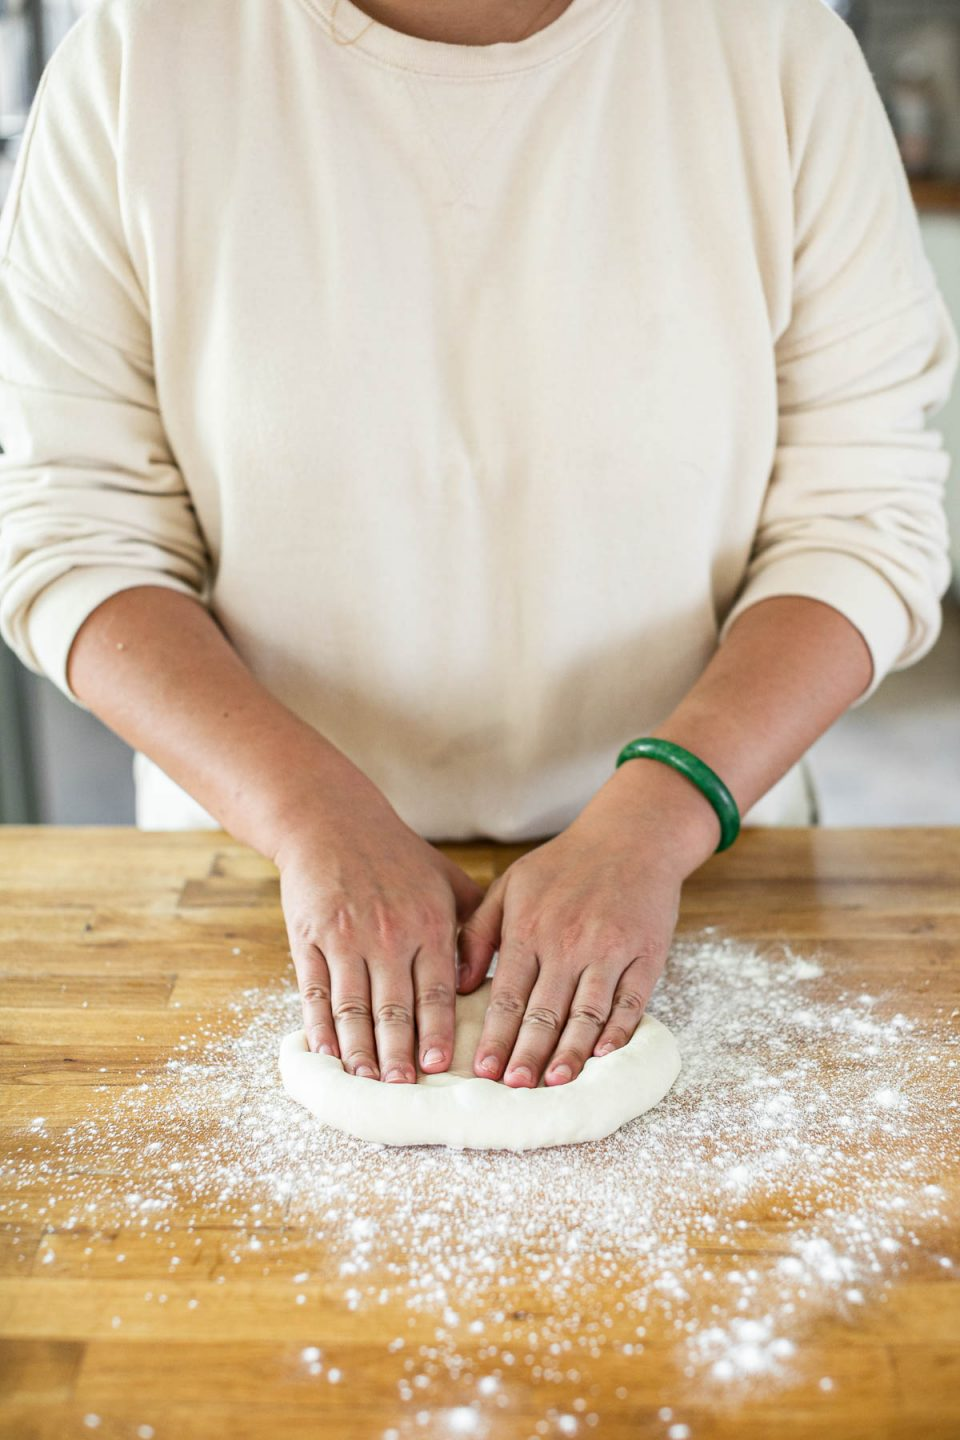 How to form pizza crust: Jess, shown in a white sweatshirt, stands behind a butcher block counter dusted in flour. Jess' fingers are pressed into a pizza dough ball, forming it into crust.